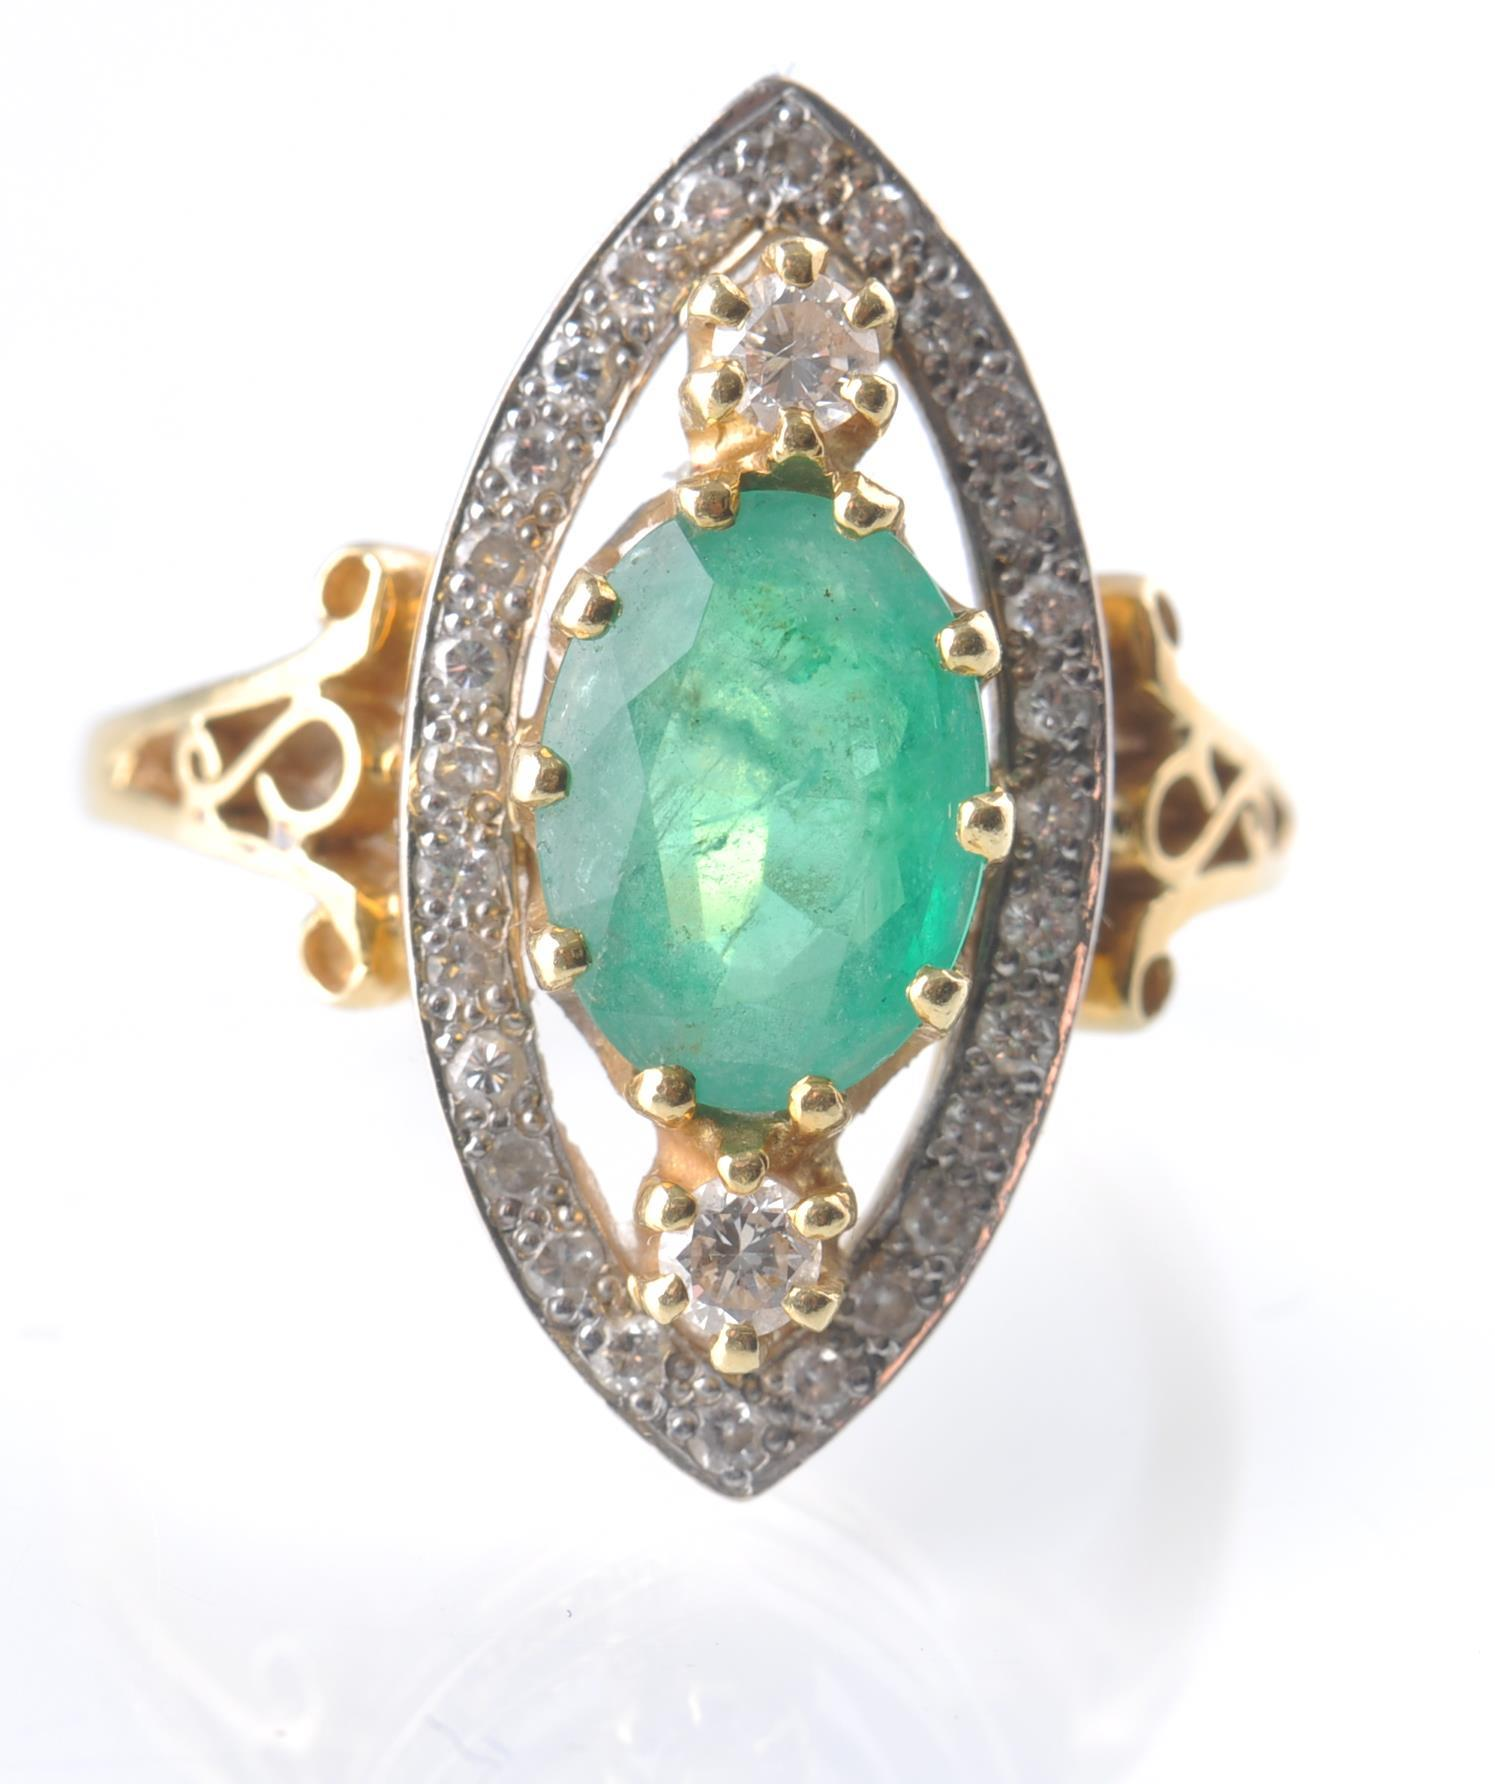 A HALLMARKED 18CT GOD EMERALD AND DIAMOND RING - Image 8 of 11